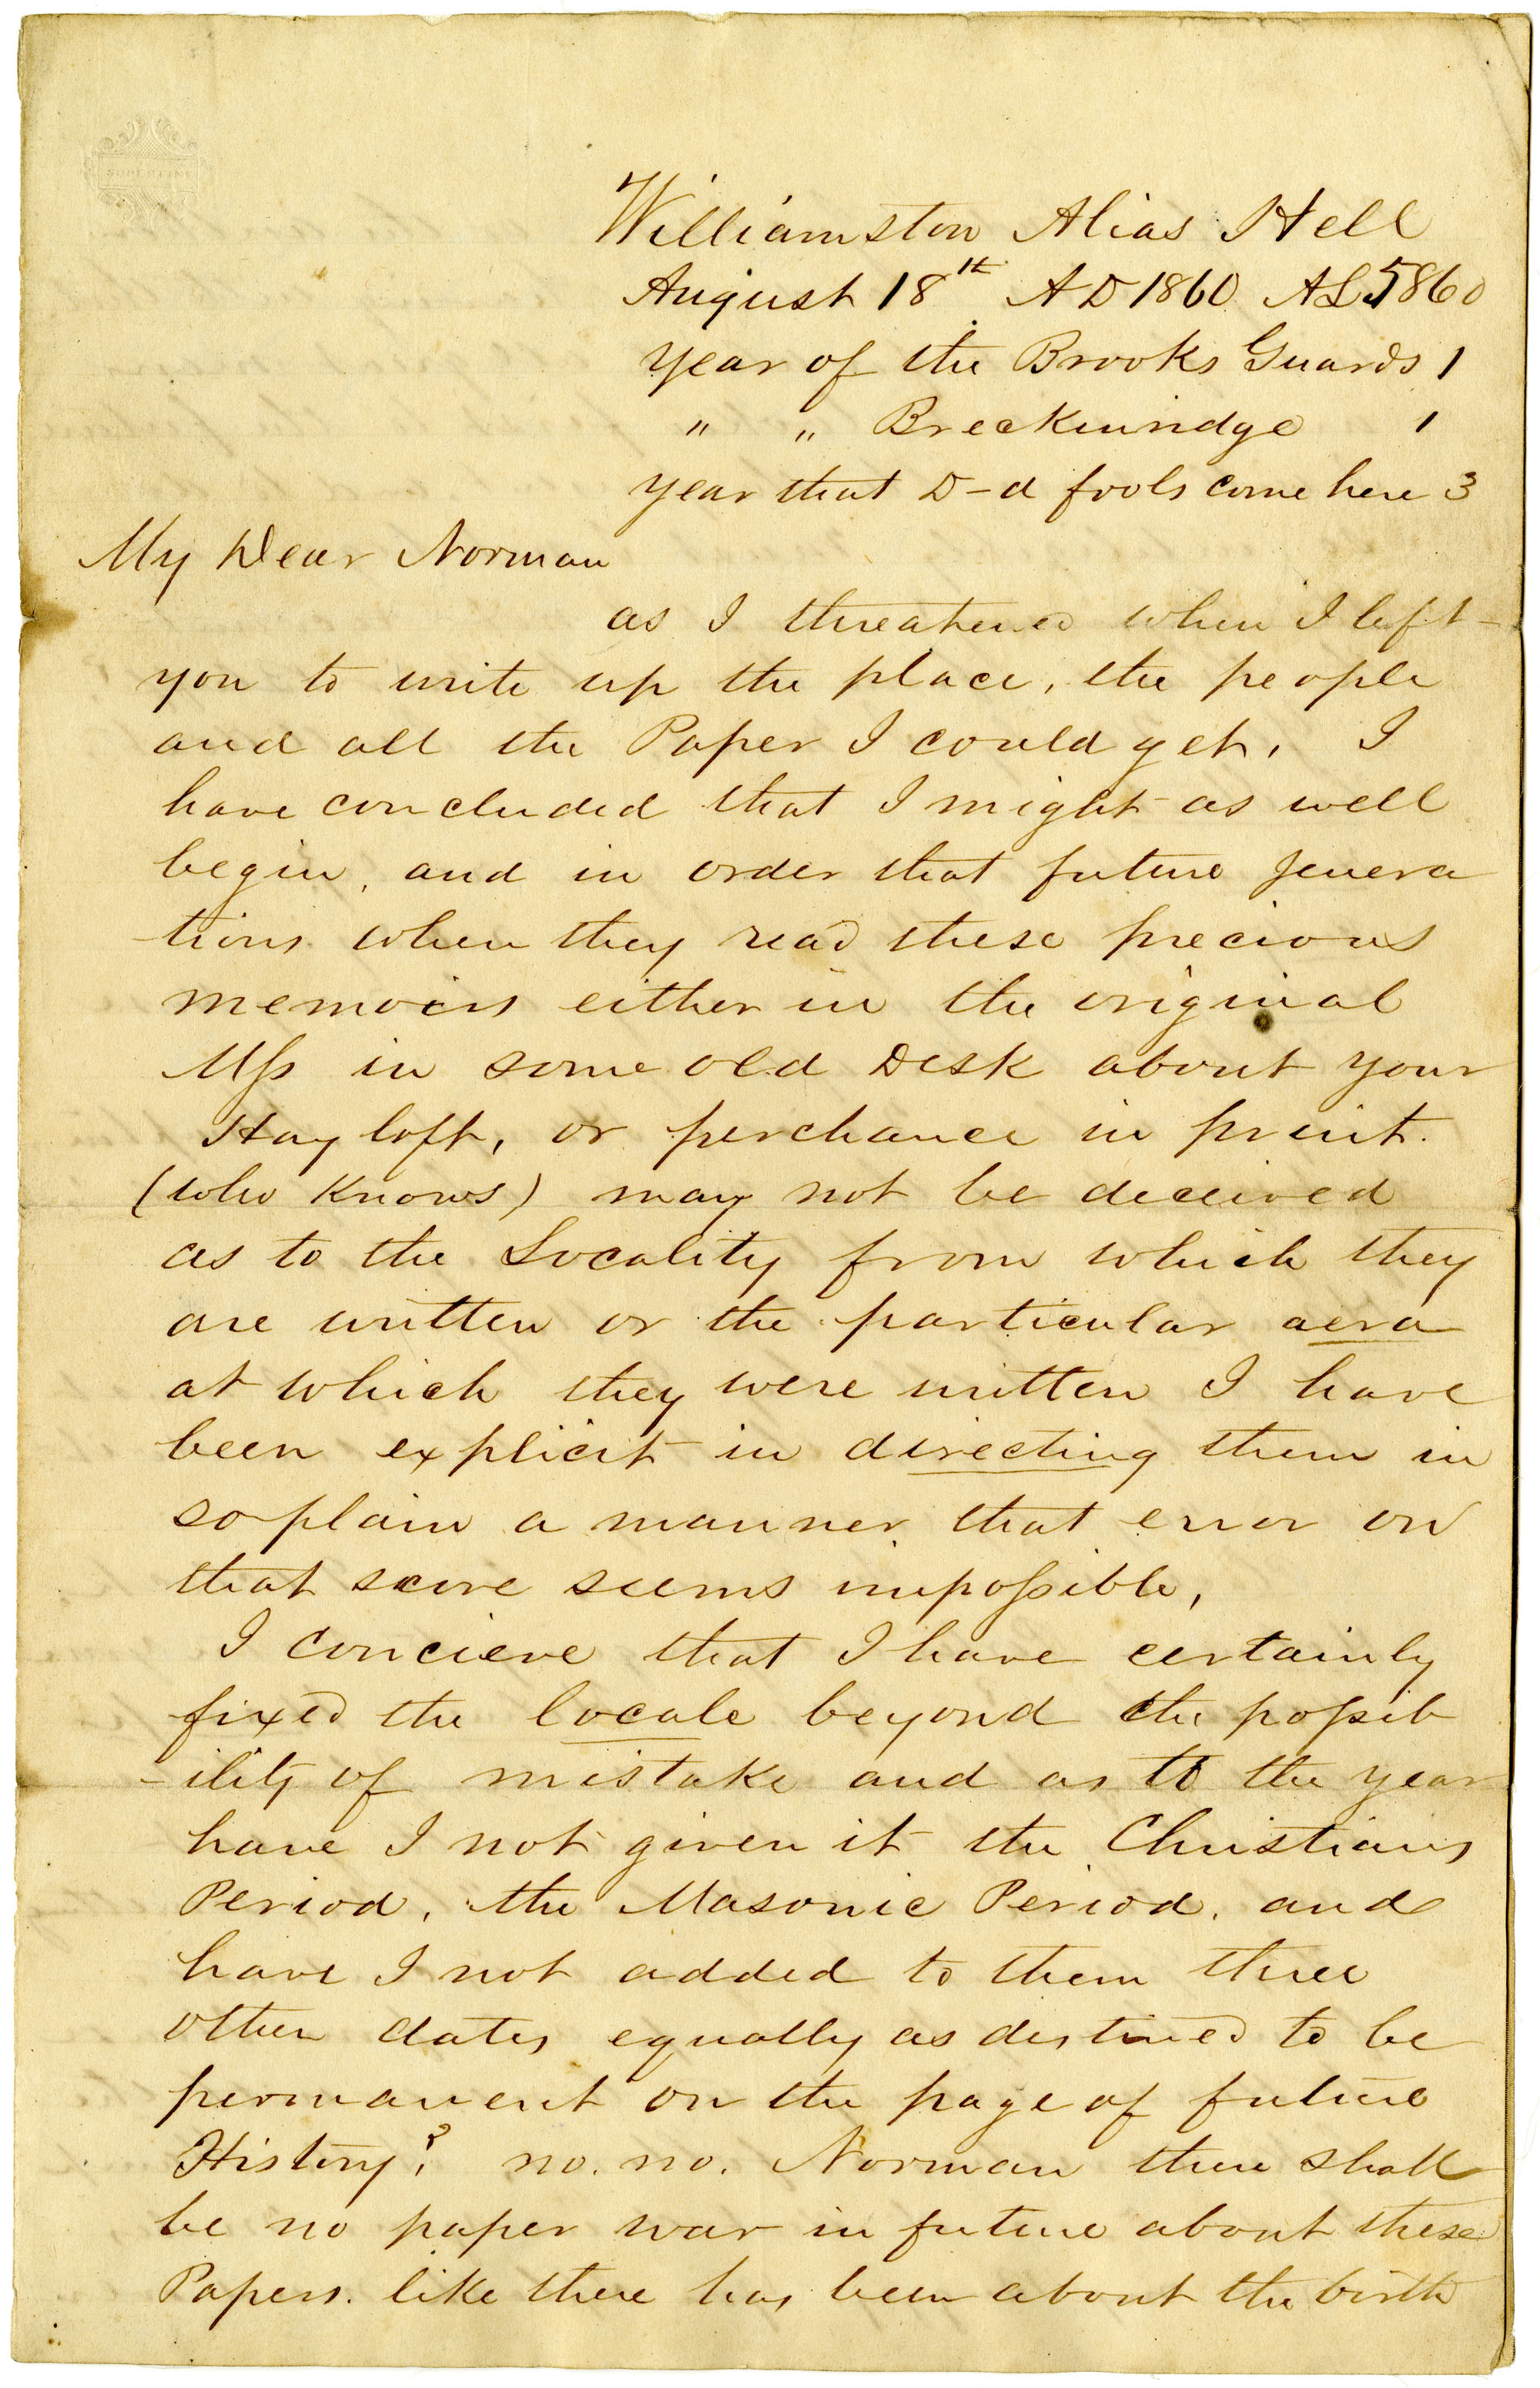 Letter from John R. Beaty to James H. Norman, Part I, August 1860